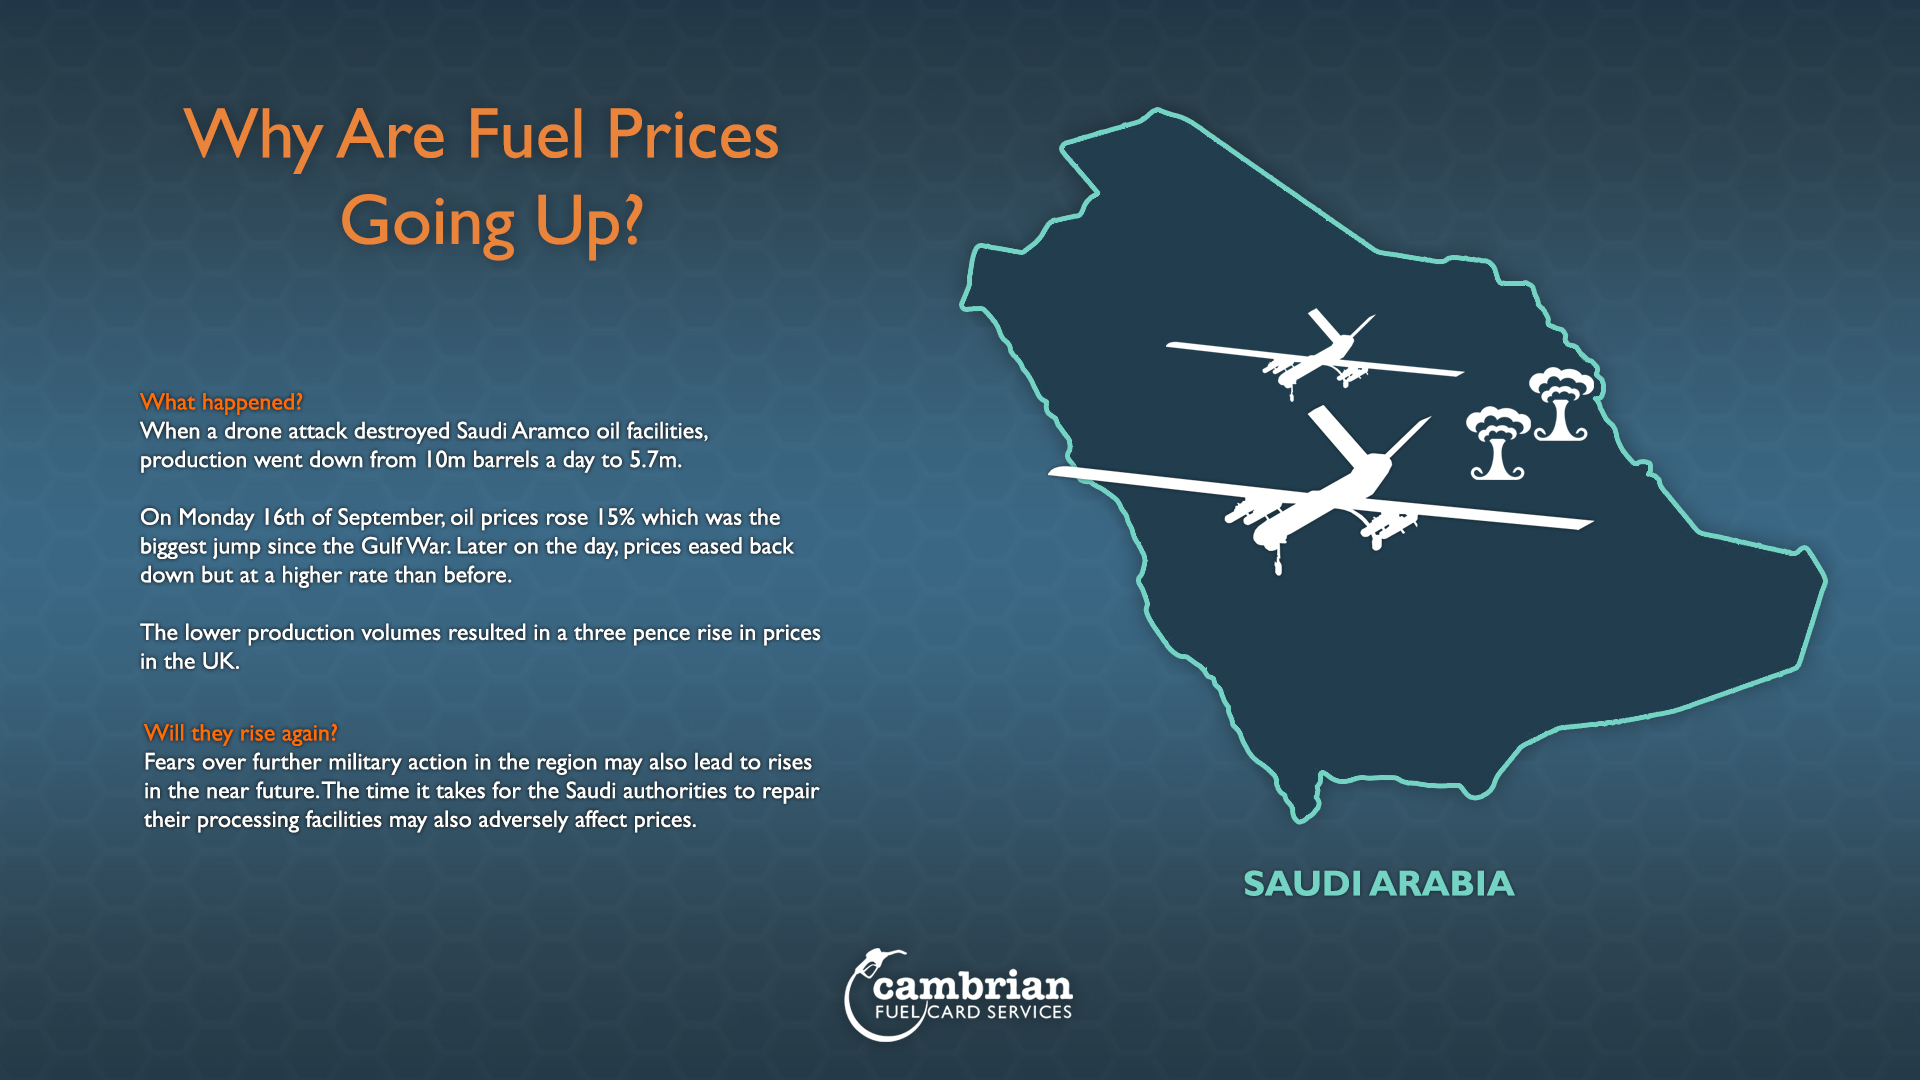 why fuel prices going up infographic